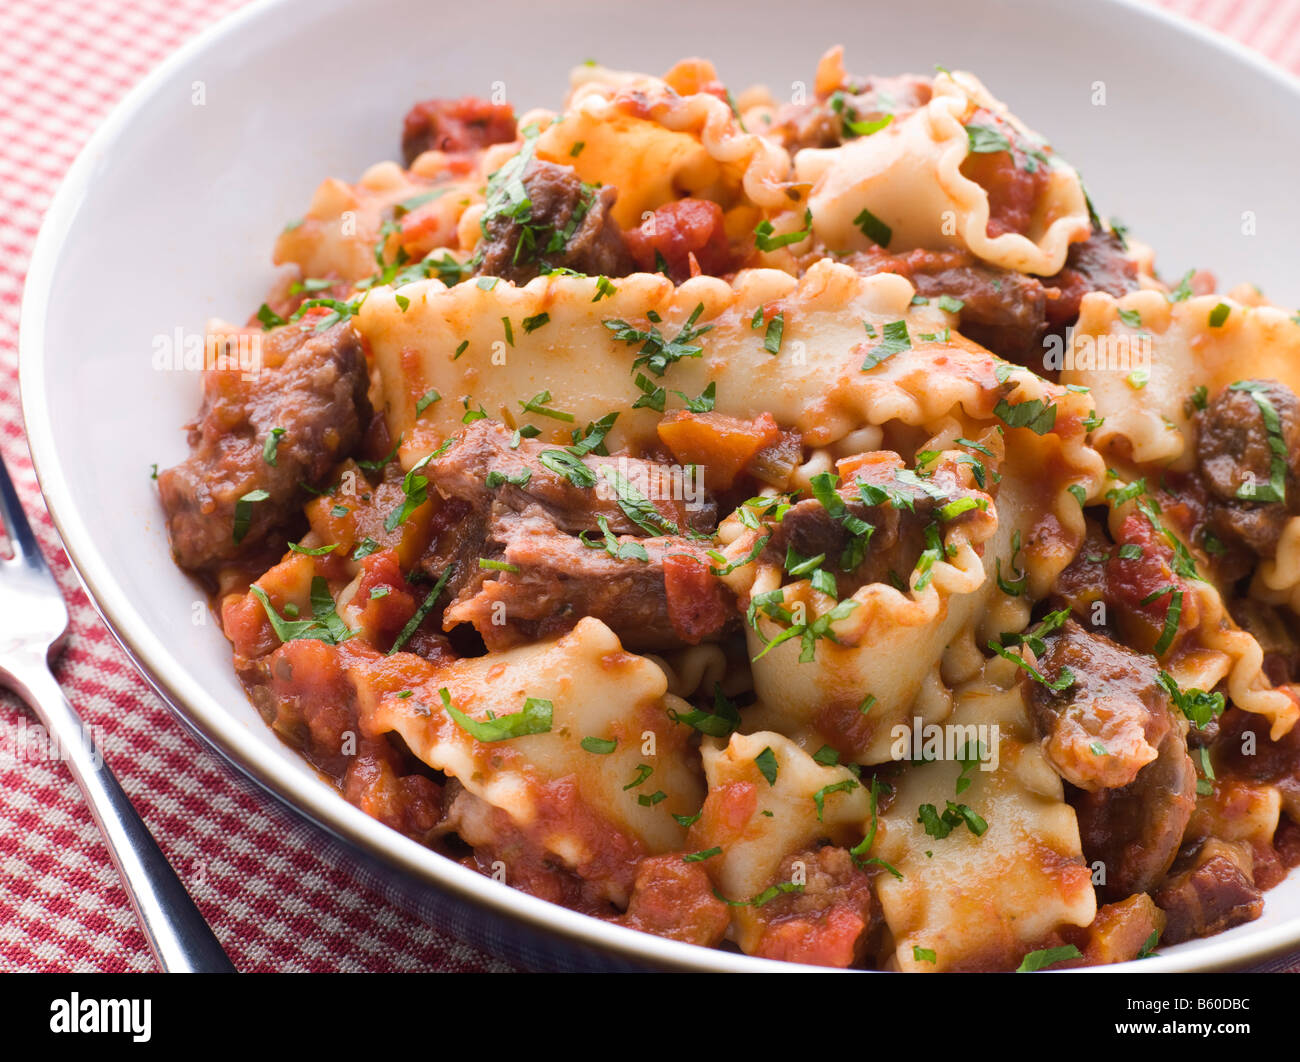 Strips of Fillet Steak in a Chilli Tomato Sauce with Trompetti Pasta - Stock Image